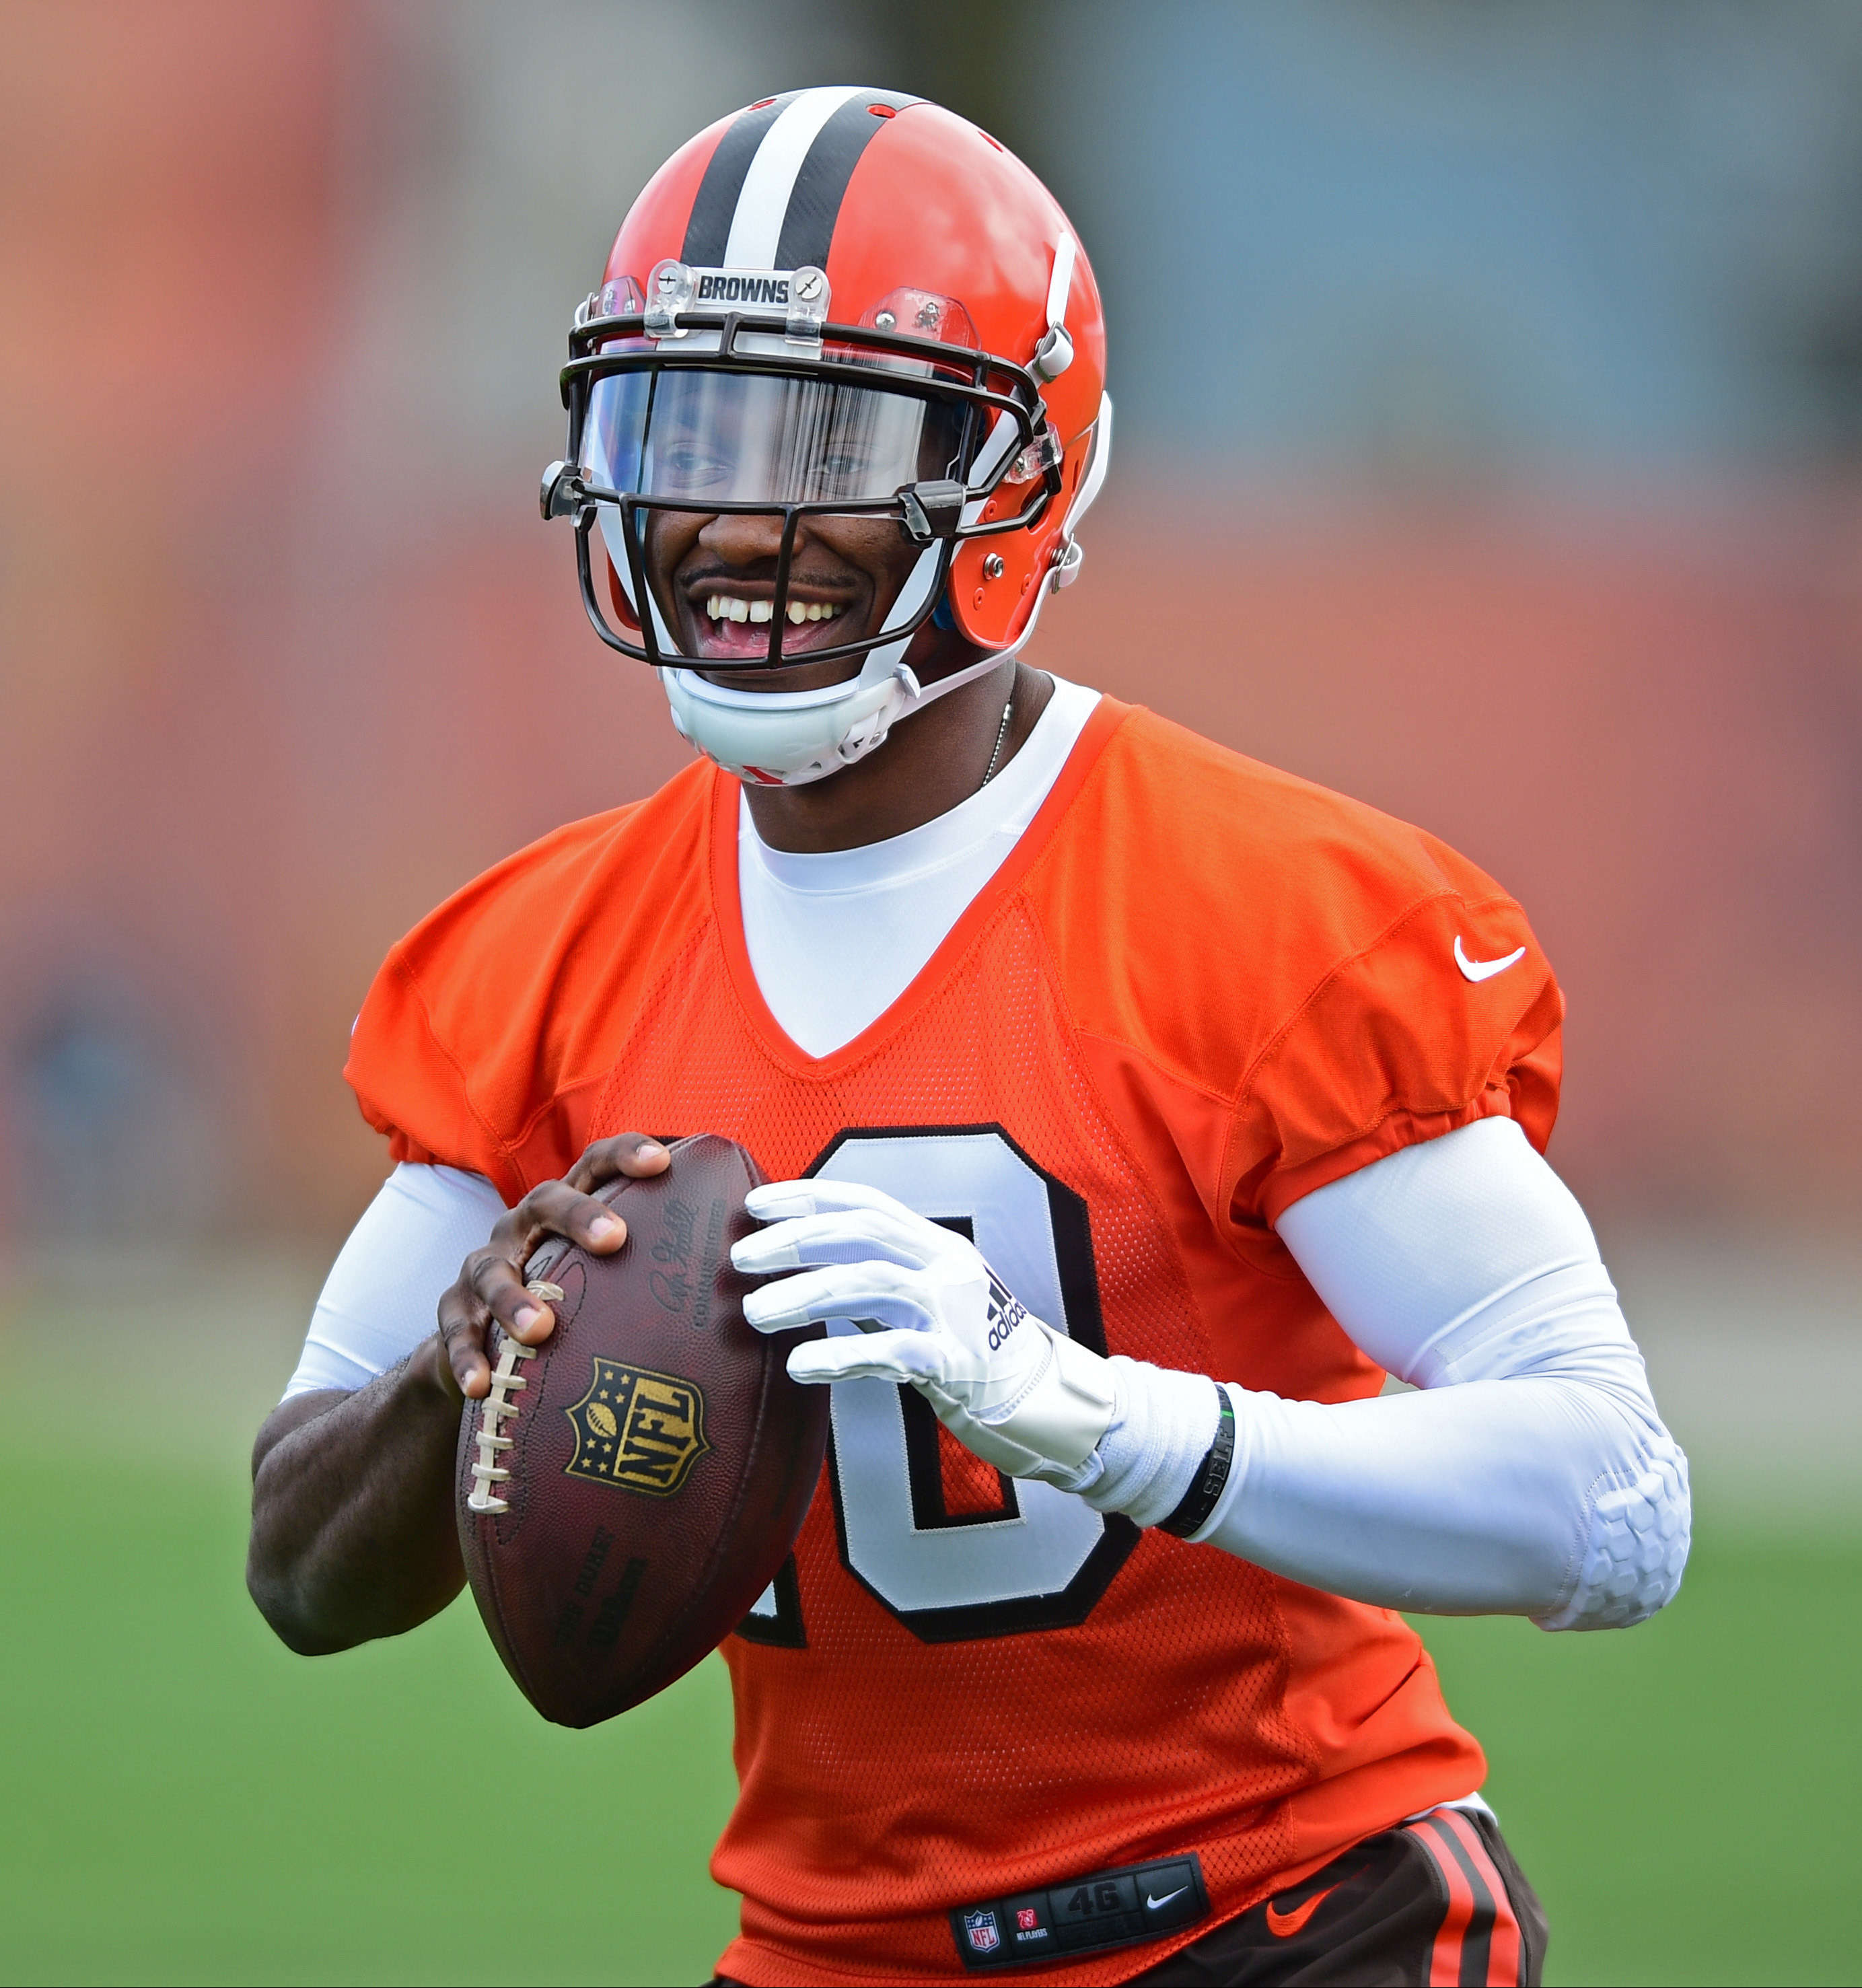 FILE - In this April 19, 2016, file photo, Cleveland Browns' Robert Griffin III smiles during practice at the NFL football team's minicamp in Berea, Ohio. Griffin III is excited to have a chance to resurrect his career in Cleveland after it fell apart wit